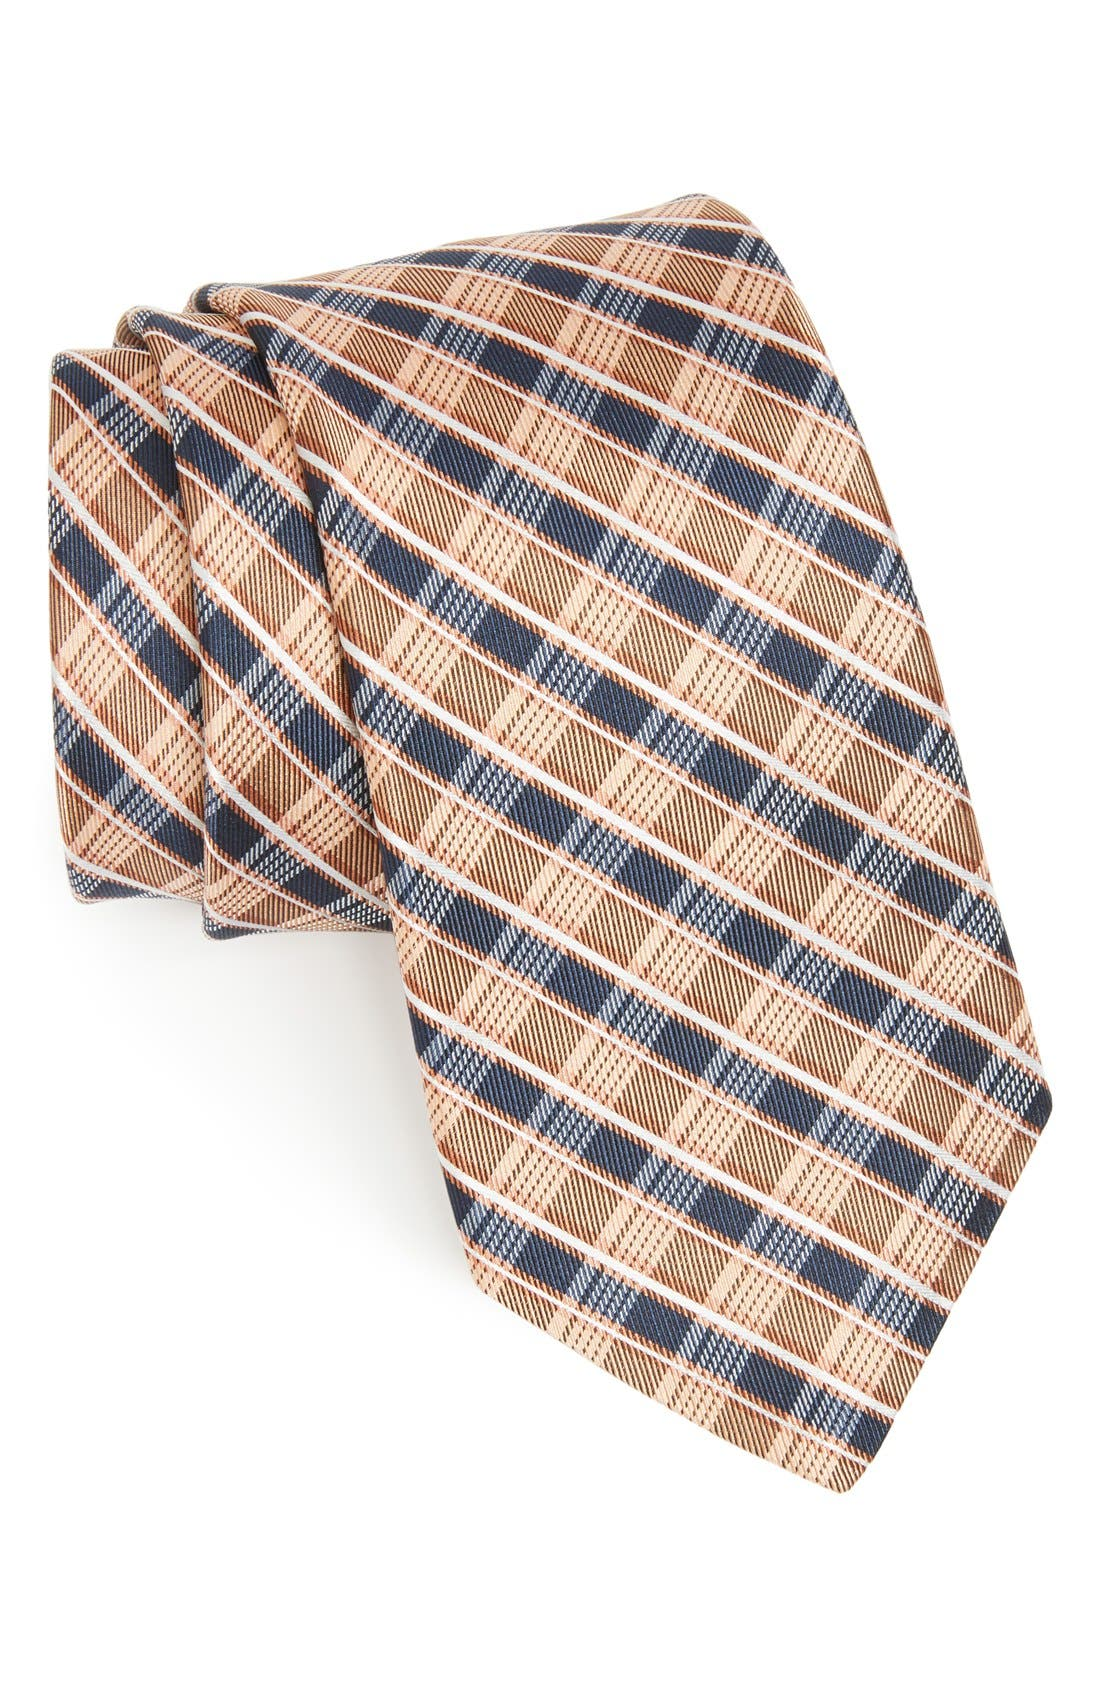 Main Image - Michael Kors Plaid Woven Silk Tie